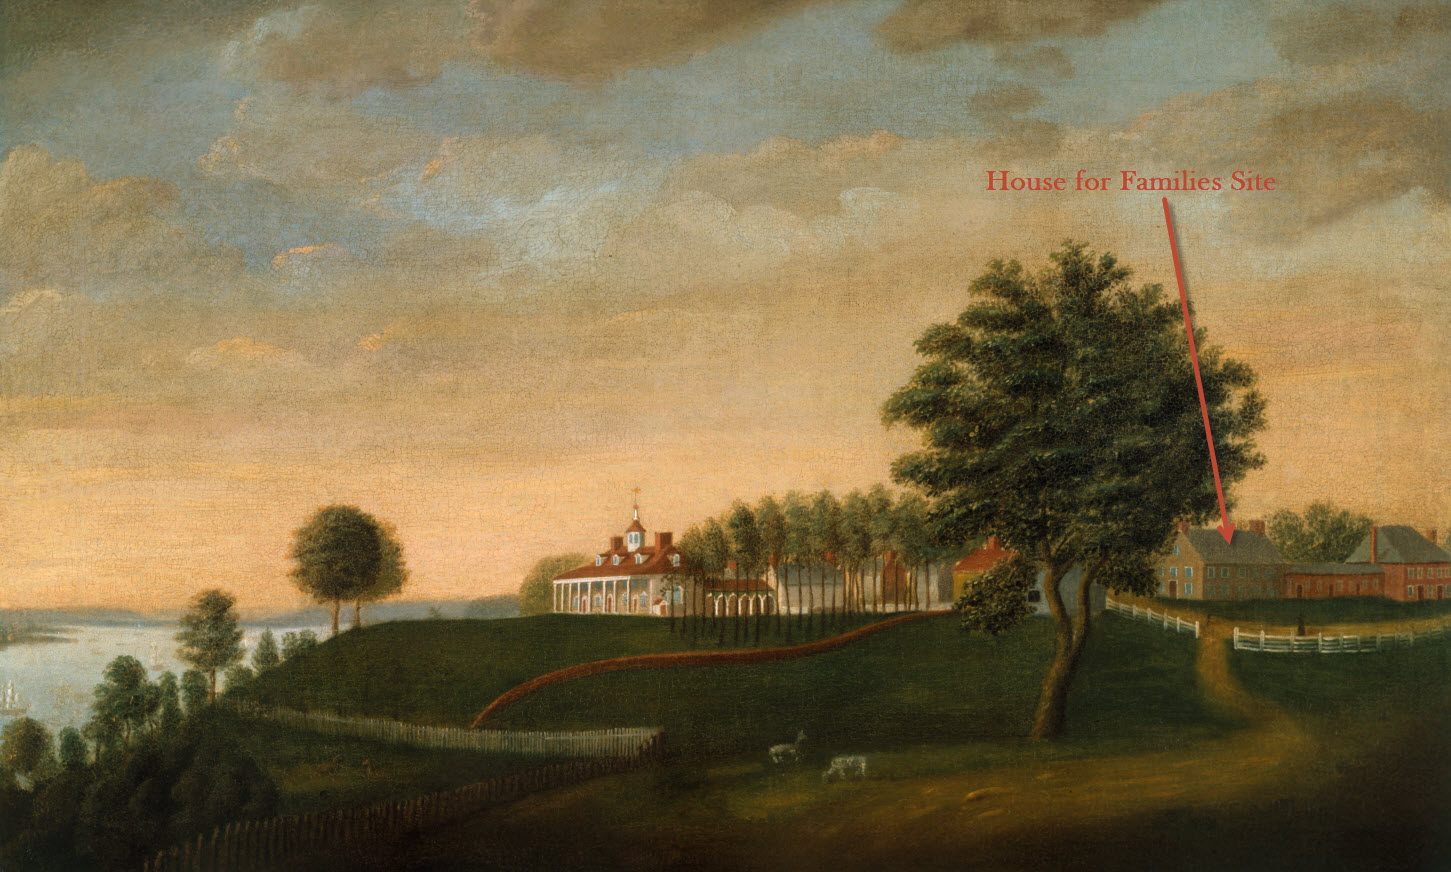 The Edward Savage painting shows the House for Families